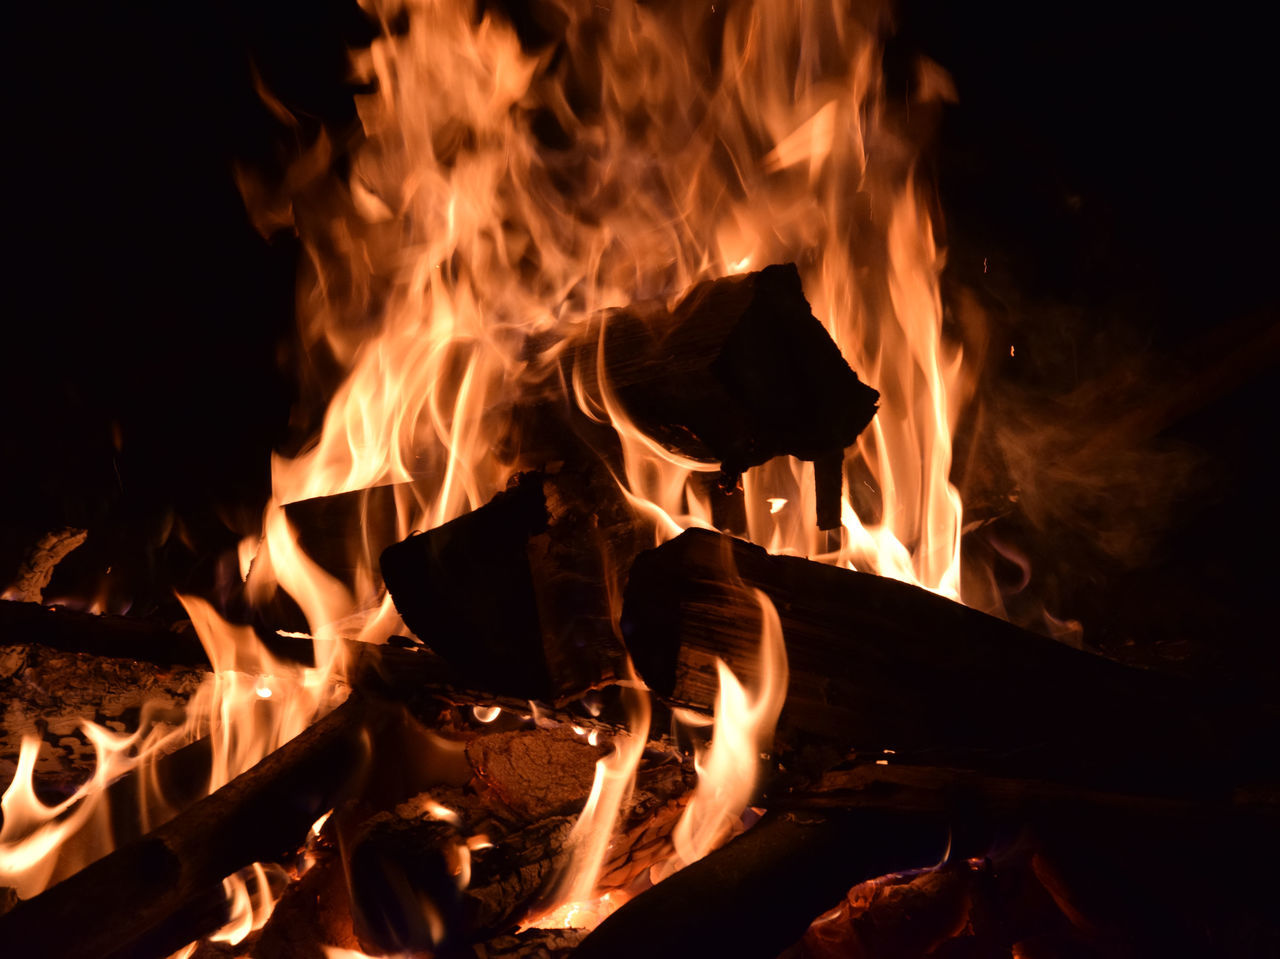 Fire in the night Bonfire Burning Campfire Fire Fire - Natural Phenomenon Firewood Flame Glowing Heat Heat - Temperature Log Night Orange Color 43 Golden Moments